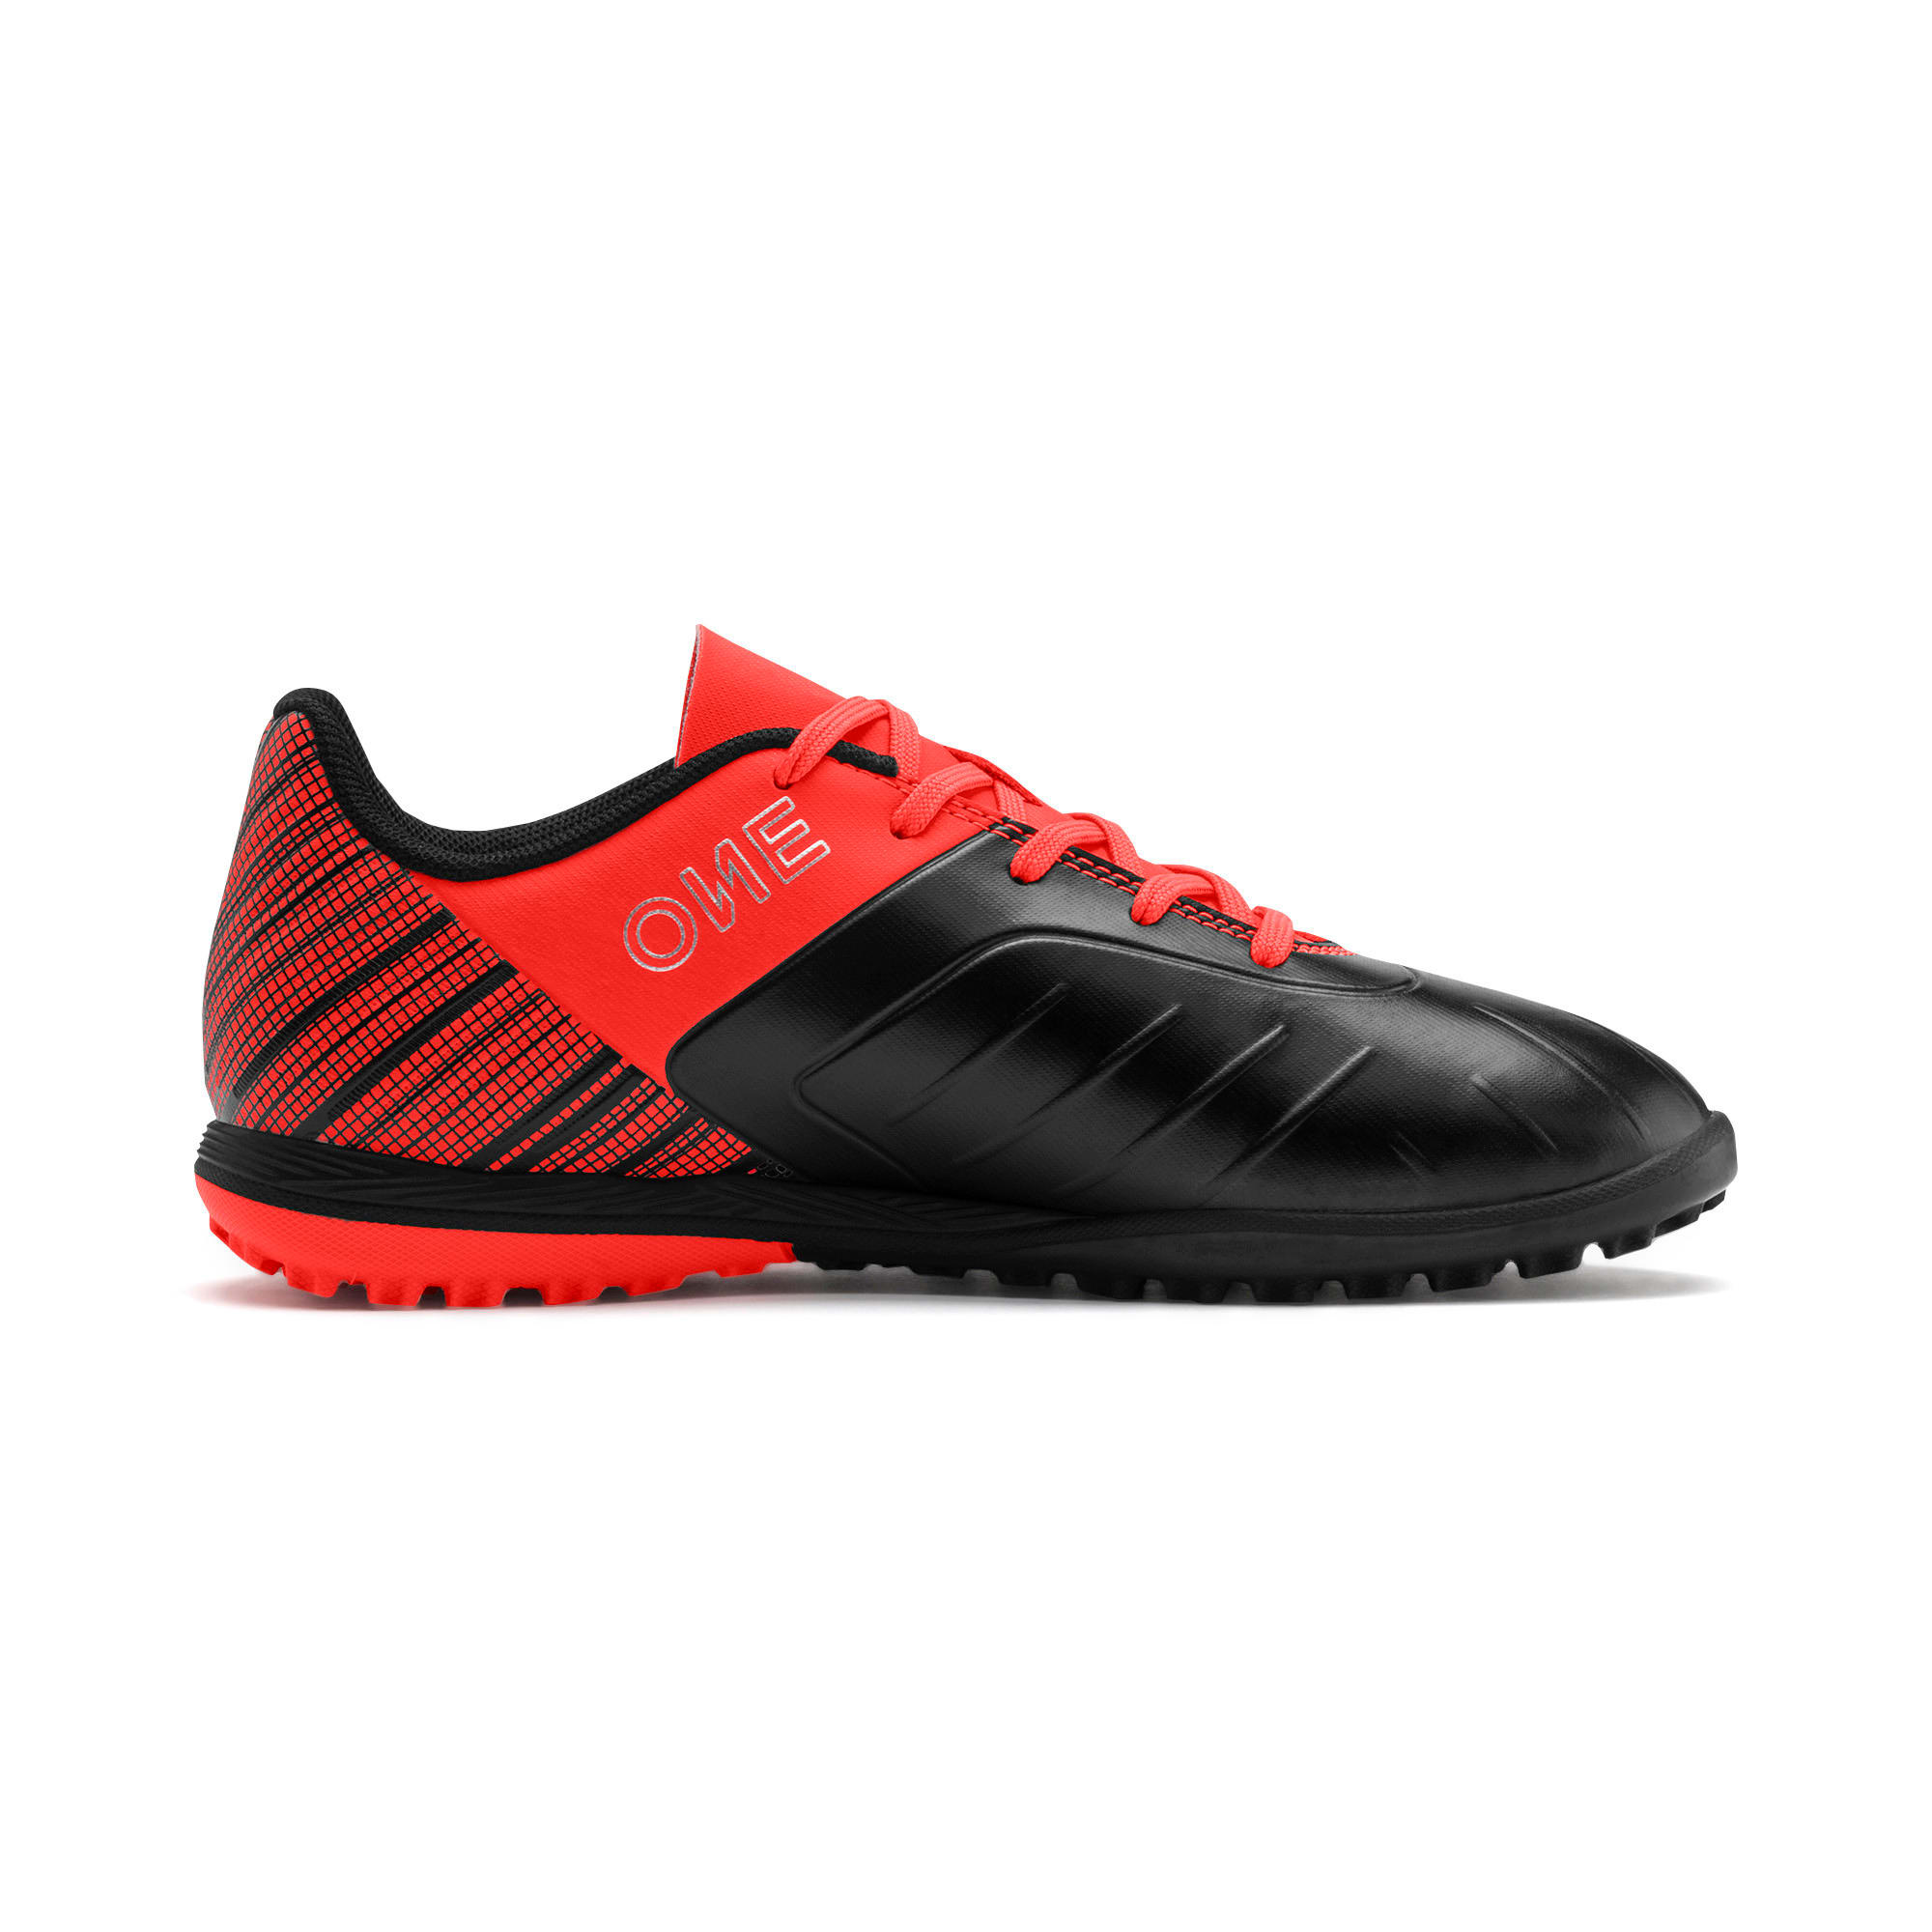 Thumbnail 5 of PUMA ONE 5.4 TT Youth Football Boots, Black-Nrgy Red-Aged Silver, medium-IND